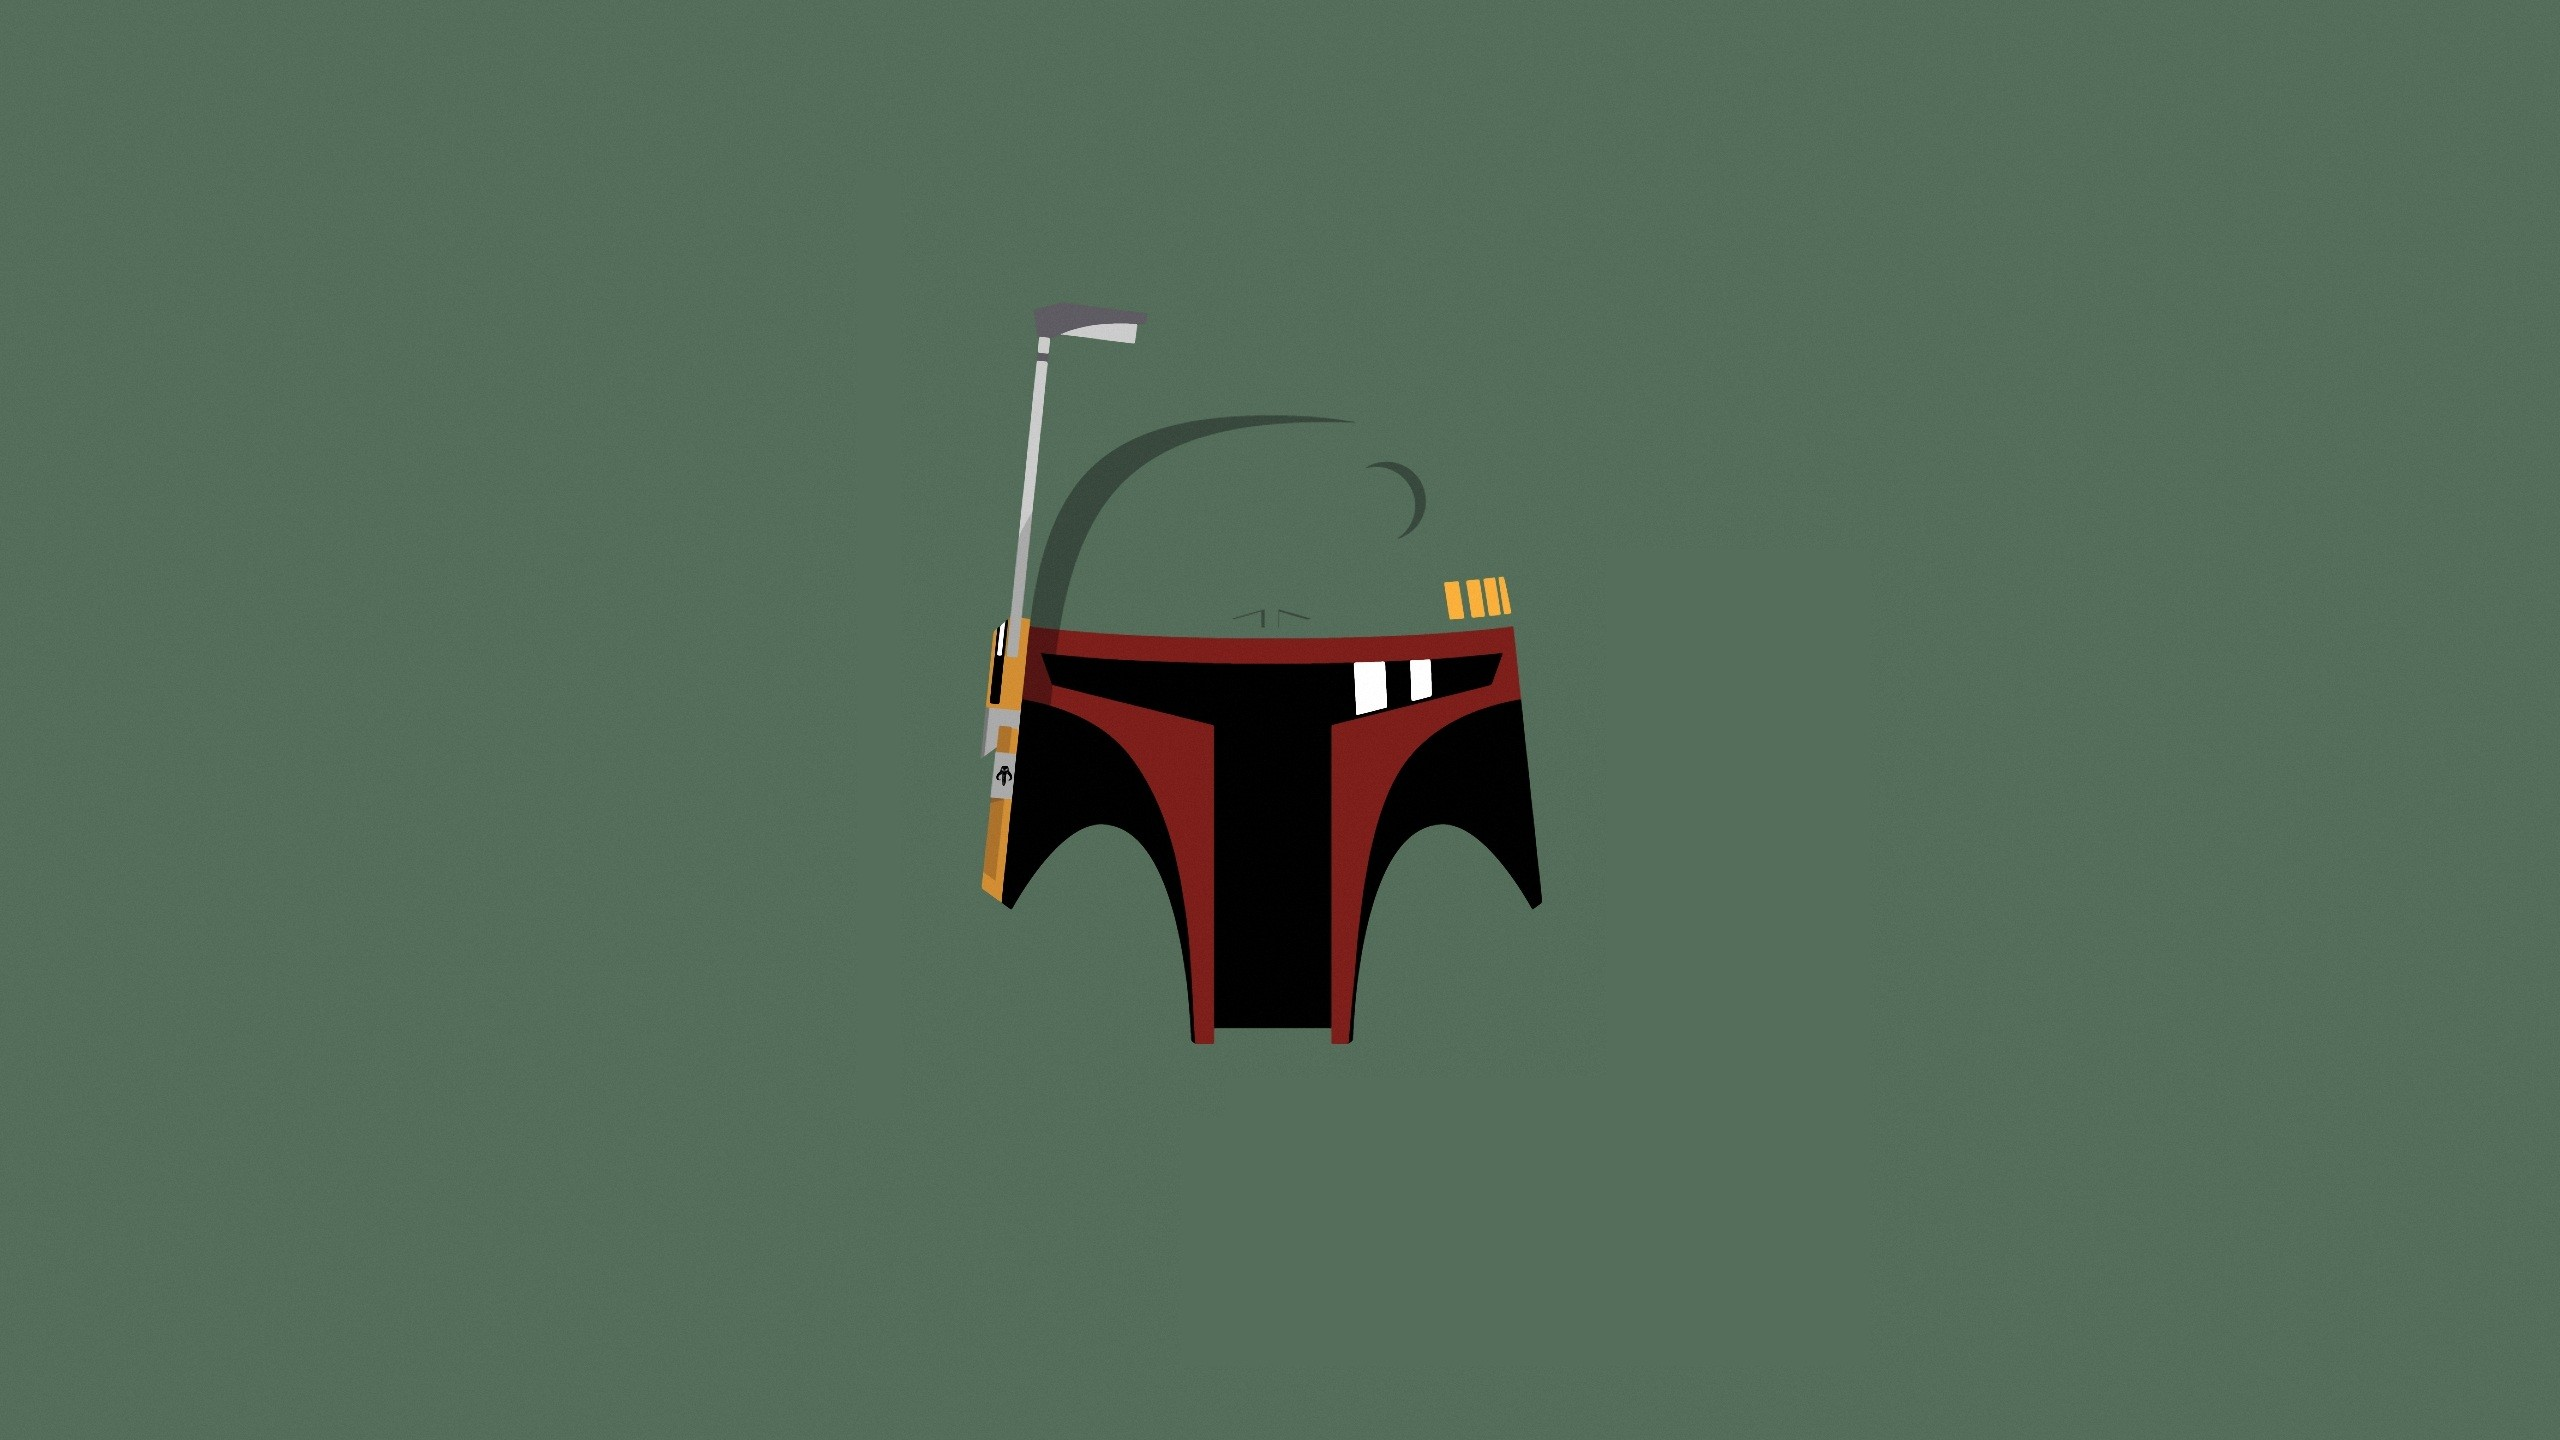 Star Wars Minimalistic Boba Fett Artwork Wallpaper